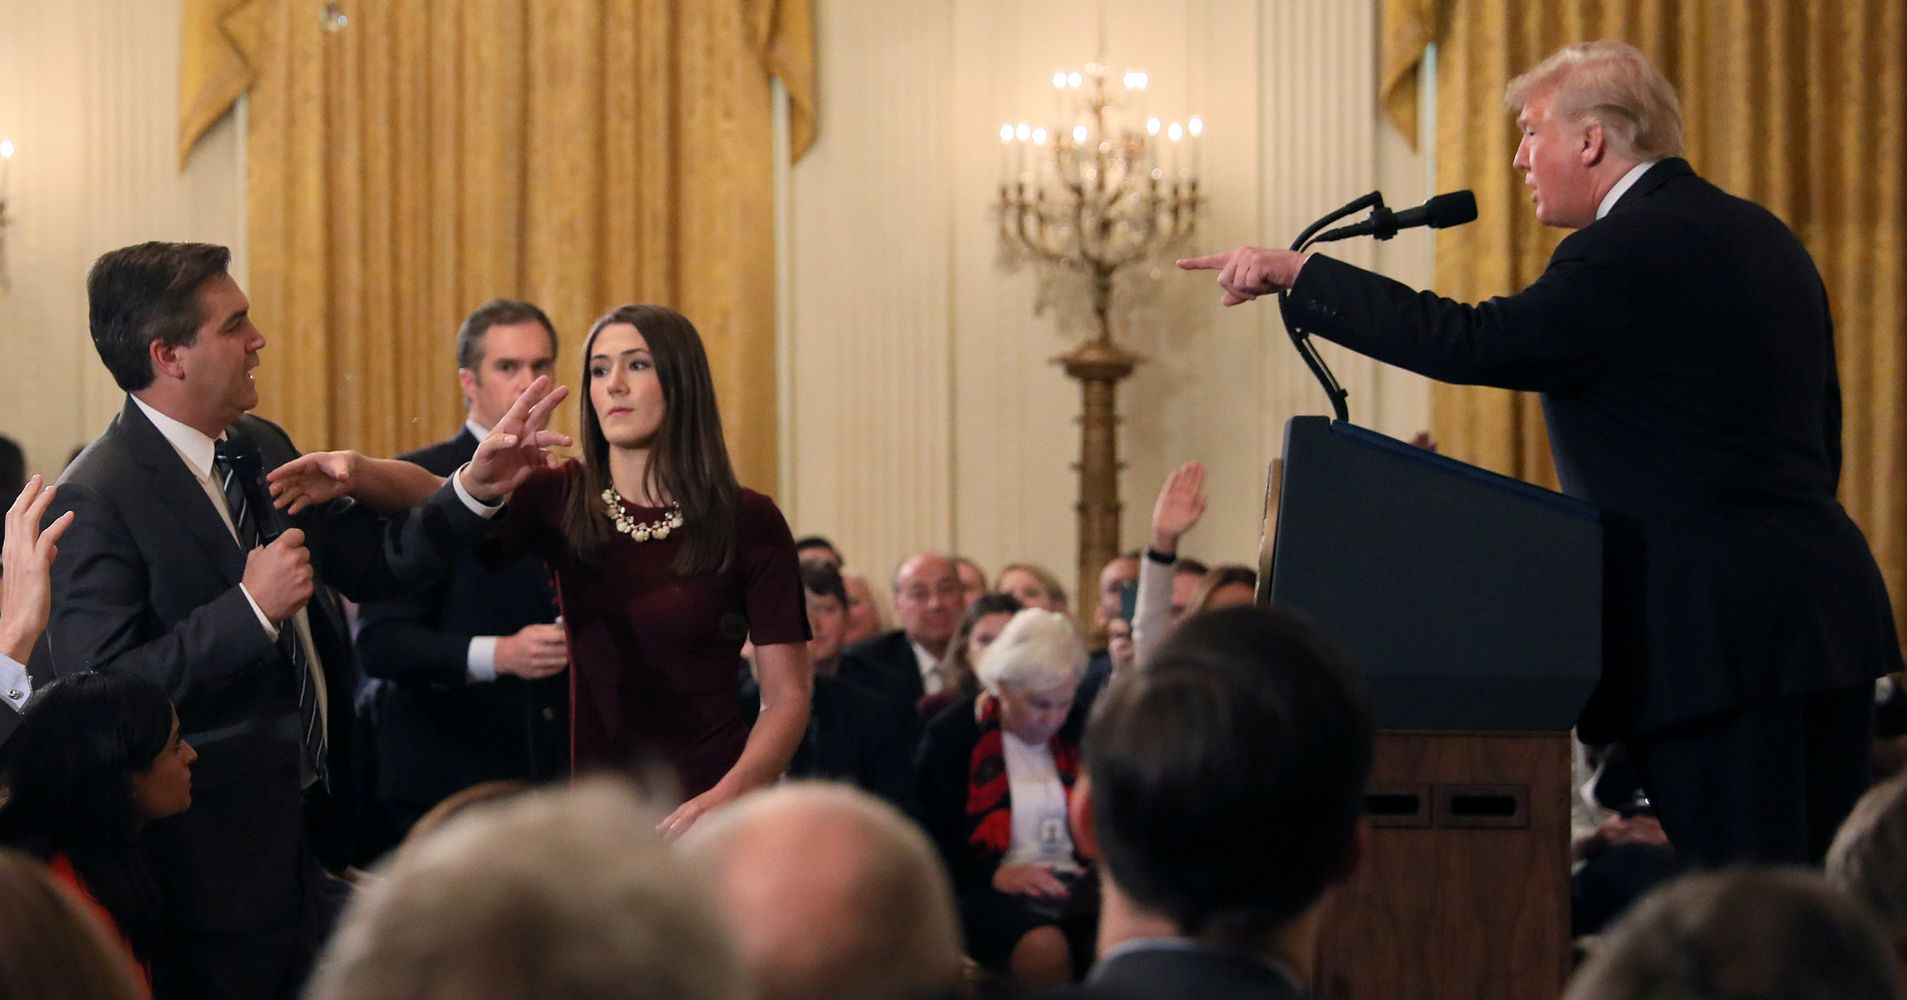 CNN Reporter Jim Acosta's White House Press Pass Suspended After Argument With Trump